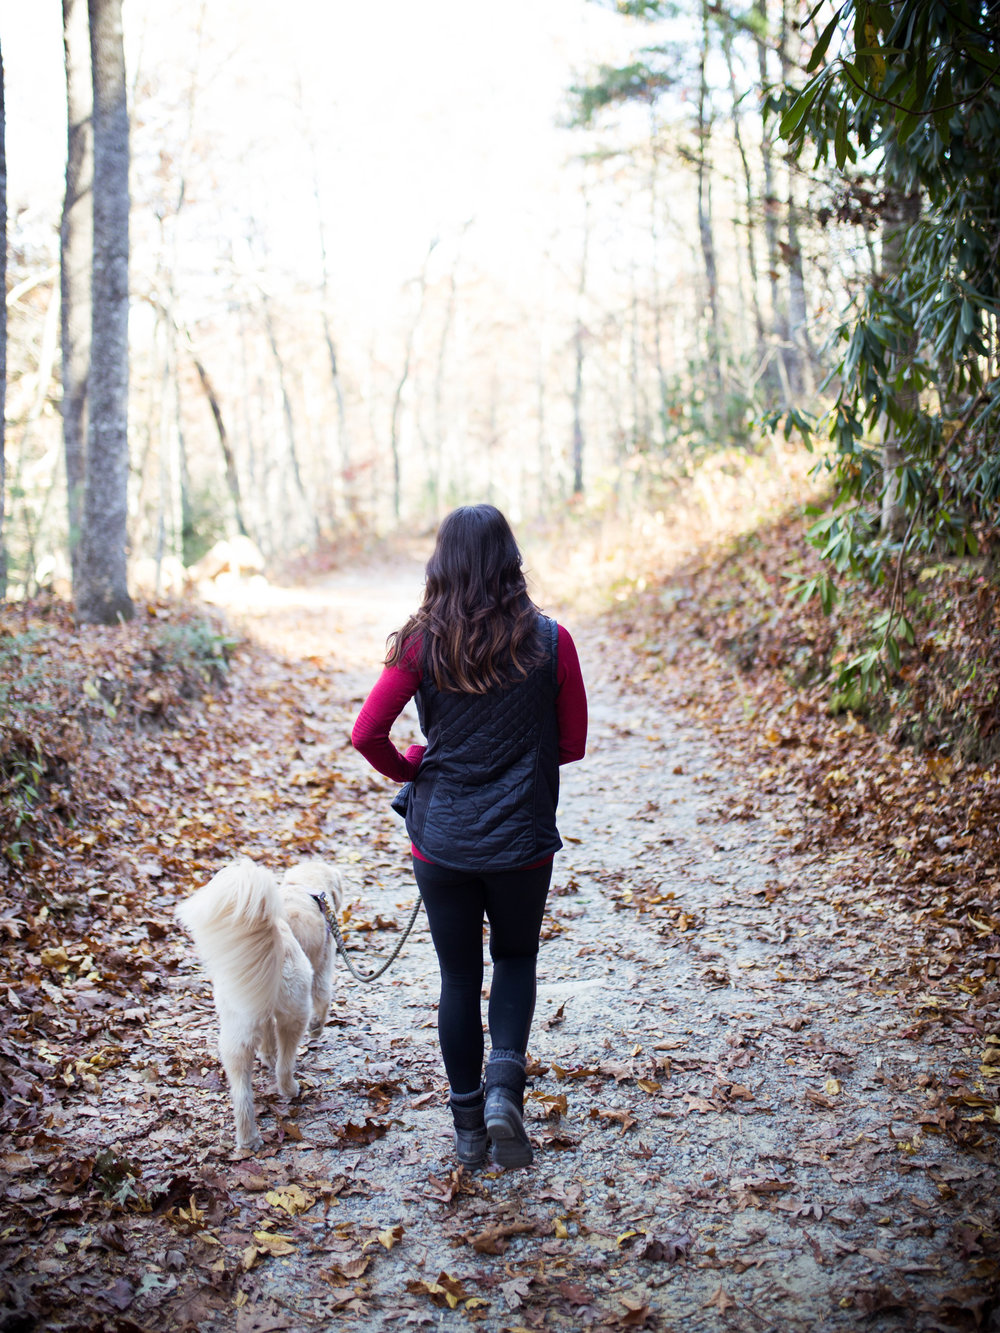 Wander Well: A Weekend in Asheville, NC | Jennifer Diaz | Travel Tips | Healthy Travel | Weekend Getaway | Explore Asheville | What to do in Asheville | Athleta | Winter Workout Clothes | Hiking Trails